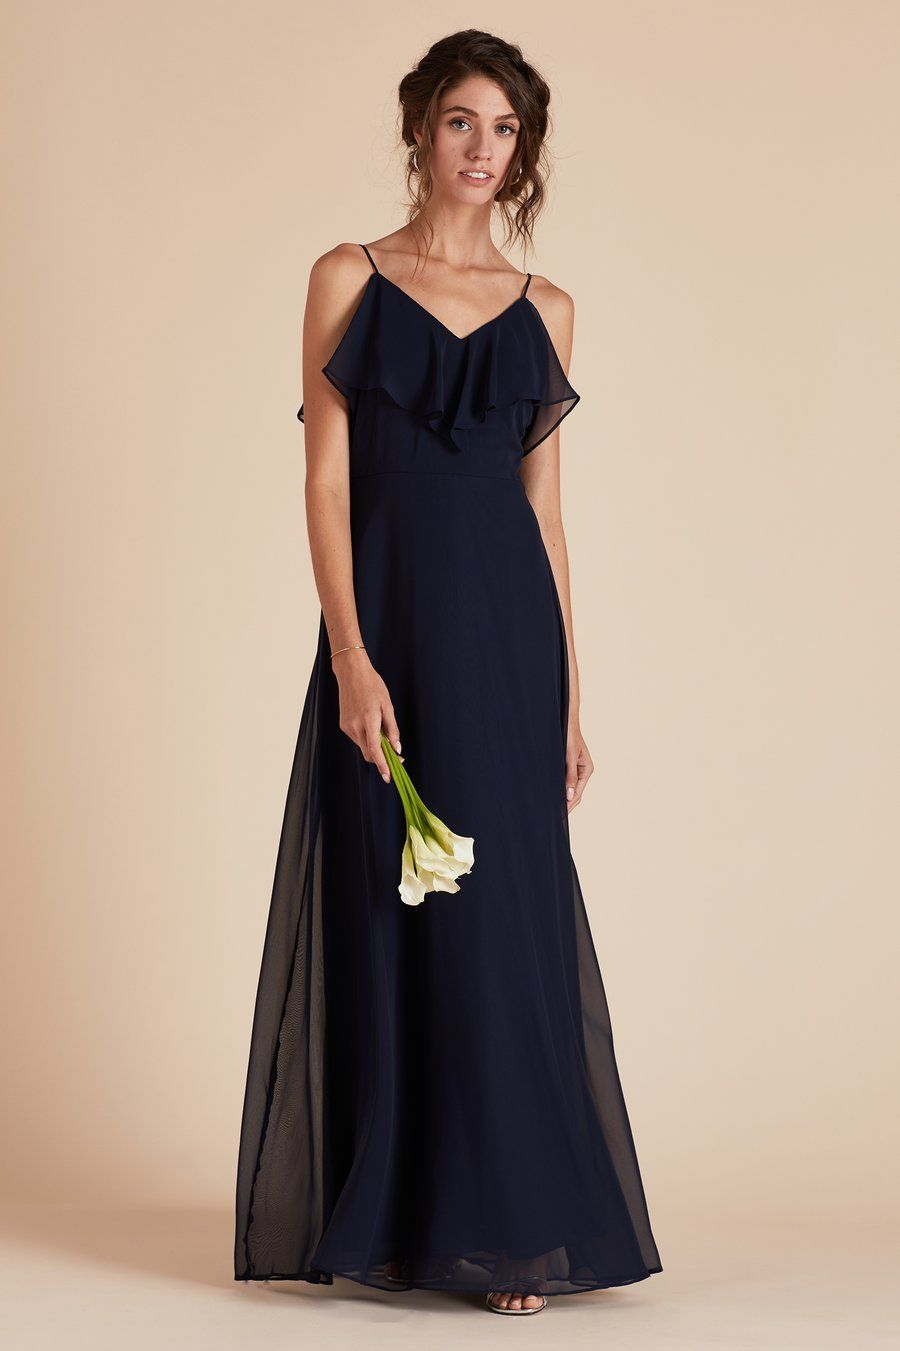 Navy Bridesmaid Dress Under 100 By Birdy Grey Jane Ruffle Convertible Gown